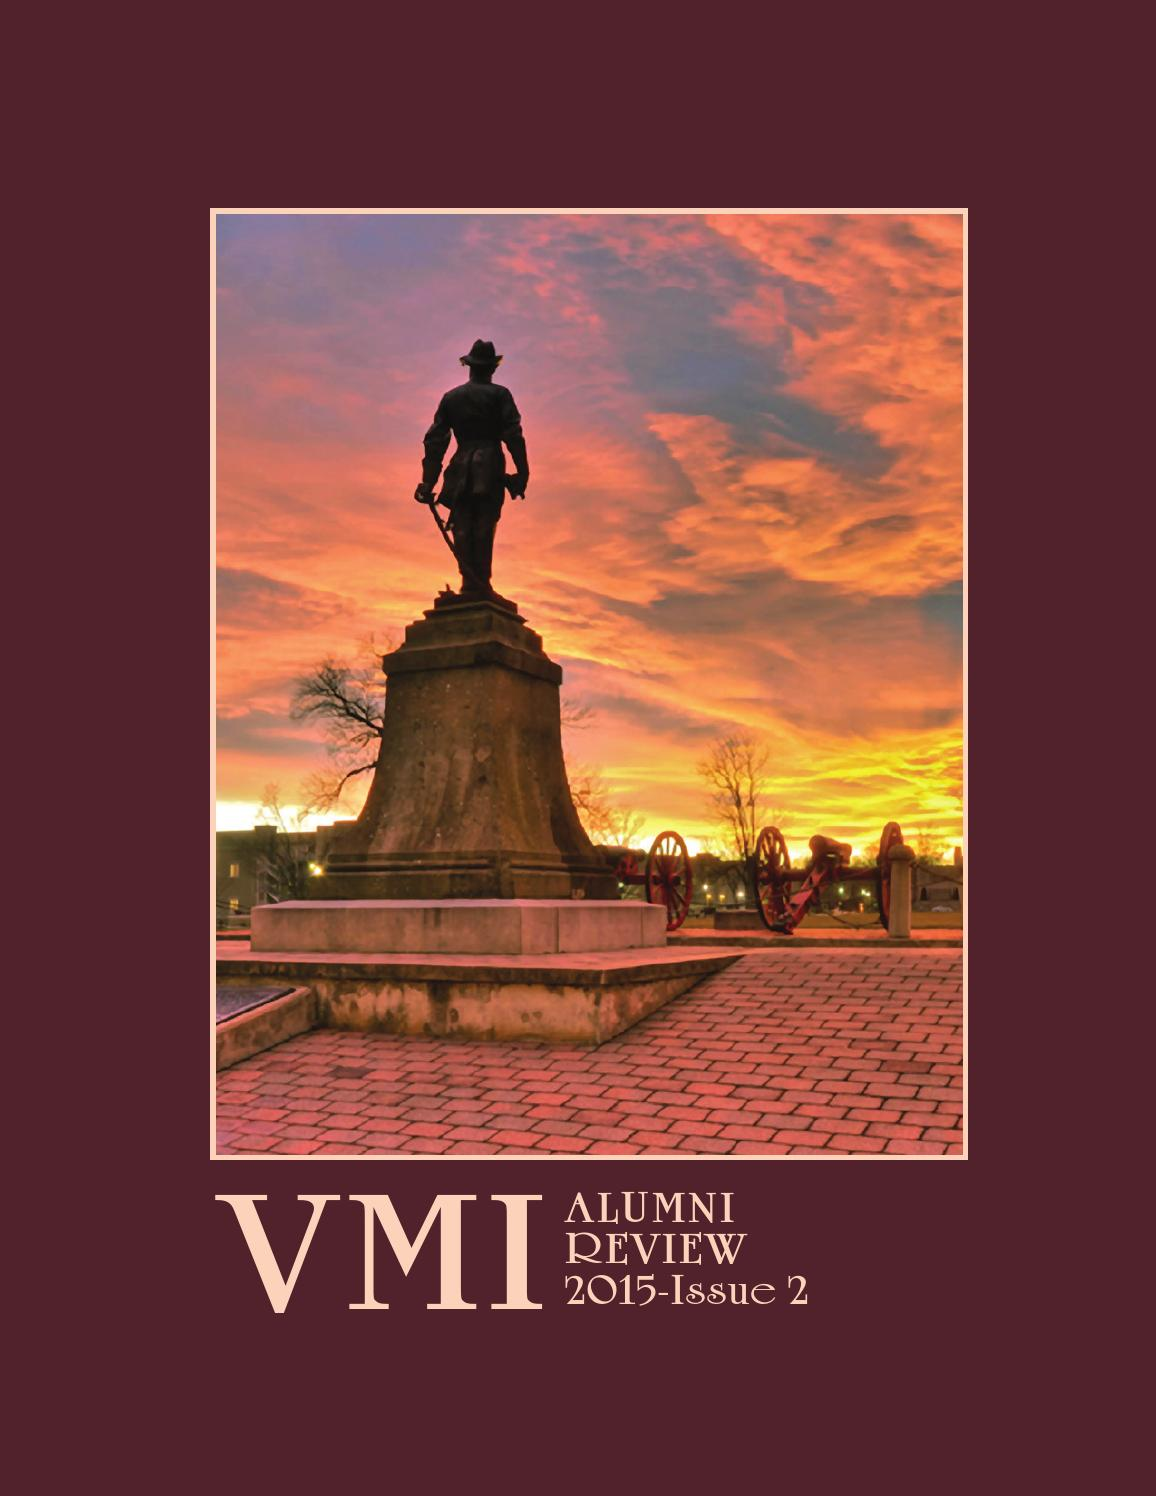 alumni review issue by vmi alumni agencies issuu